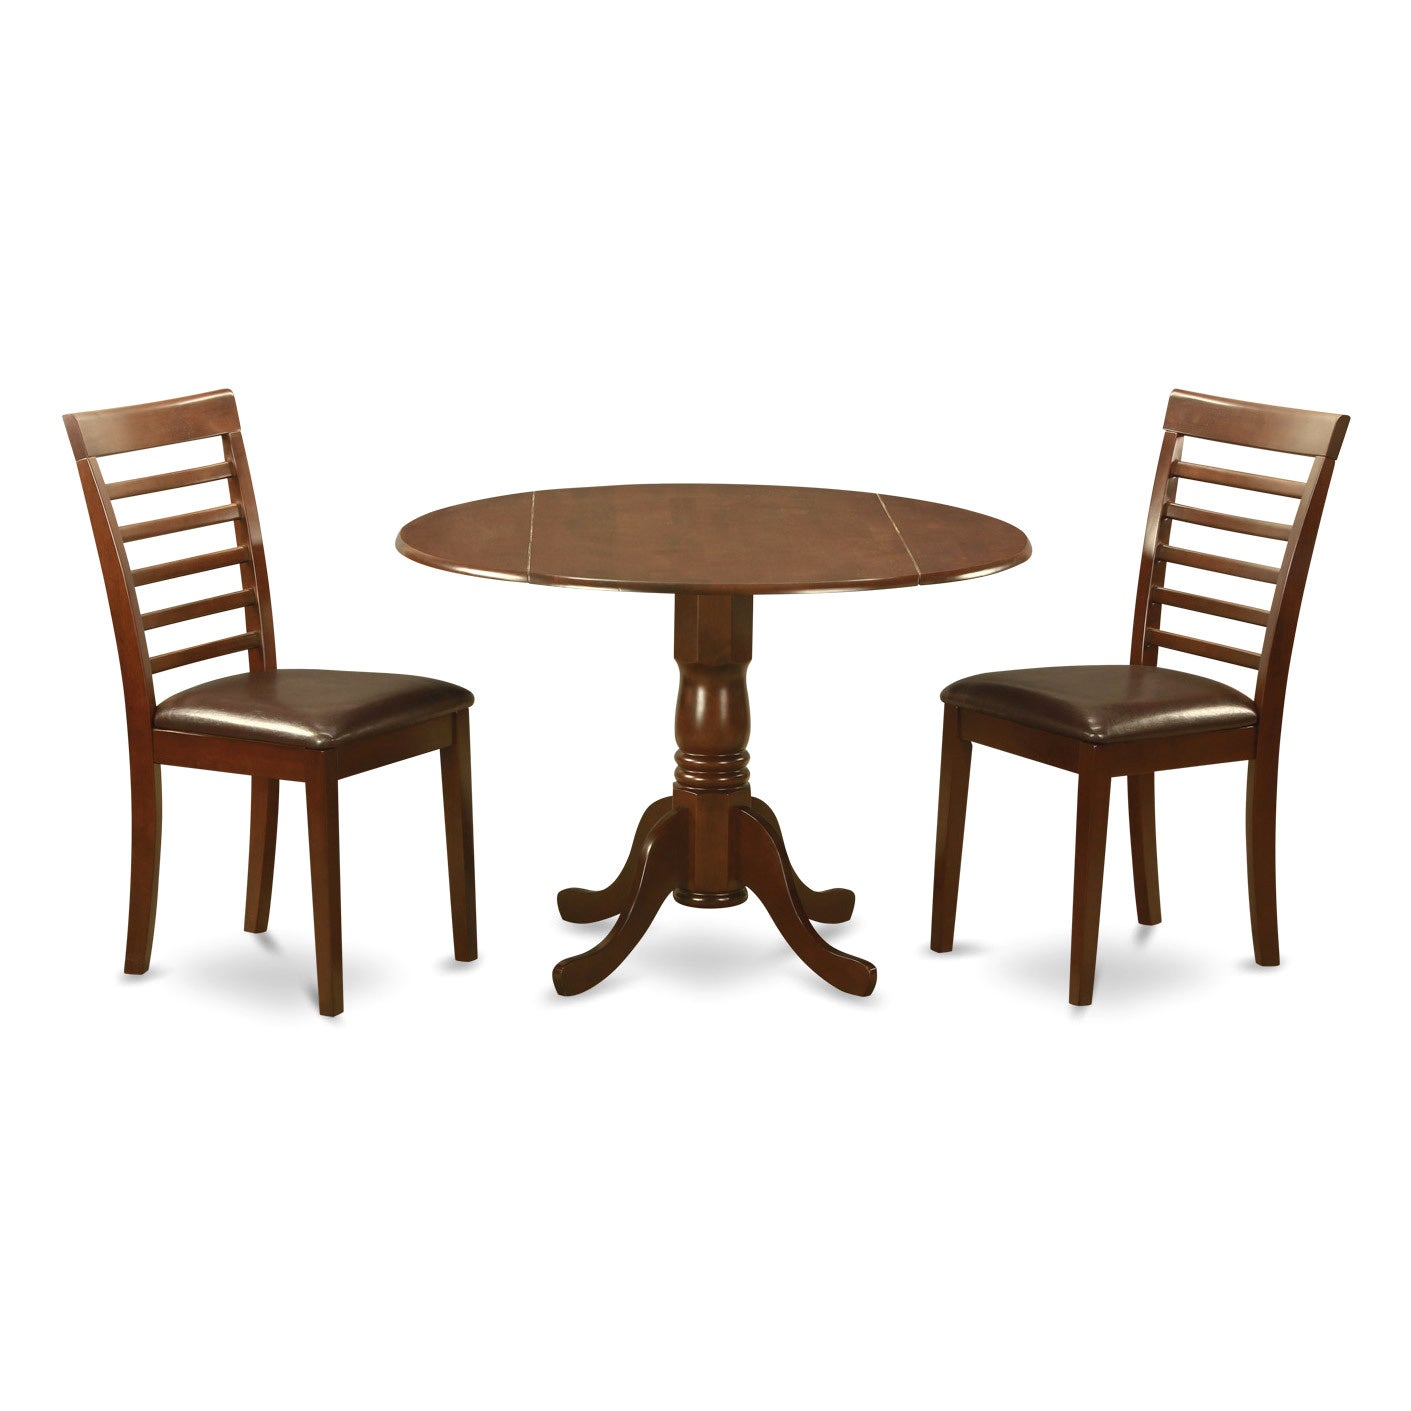 Shop Mahogany Round Kitchen Table And 2 Chairs 3 Piece Dining Set On Sale Overstock 10201127